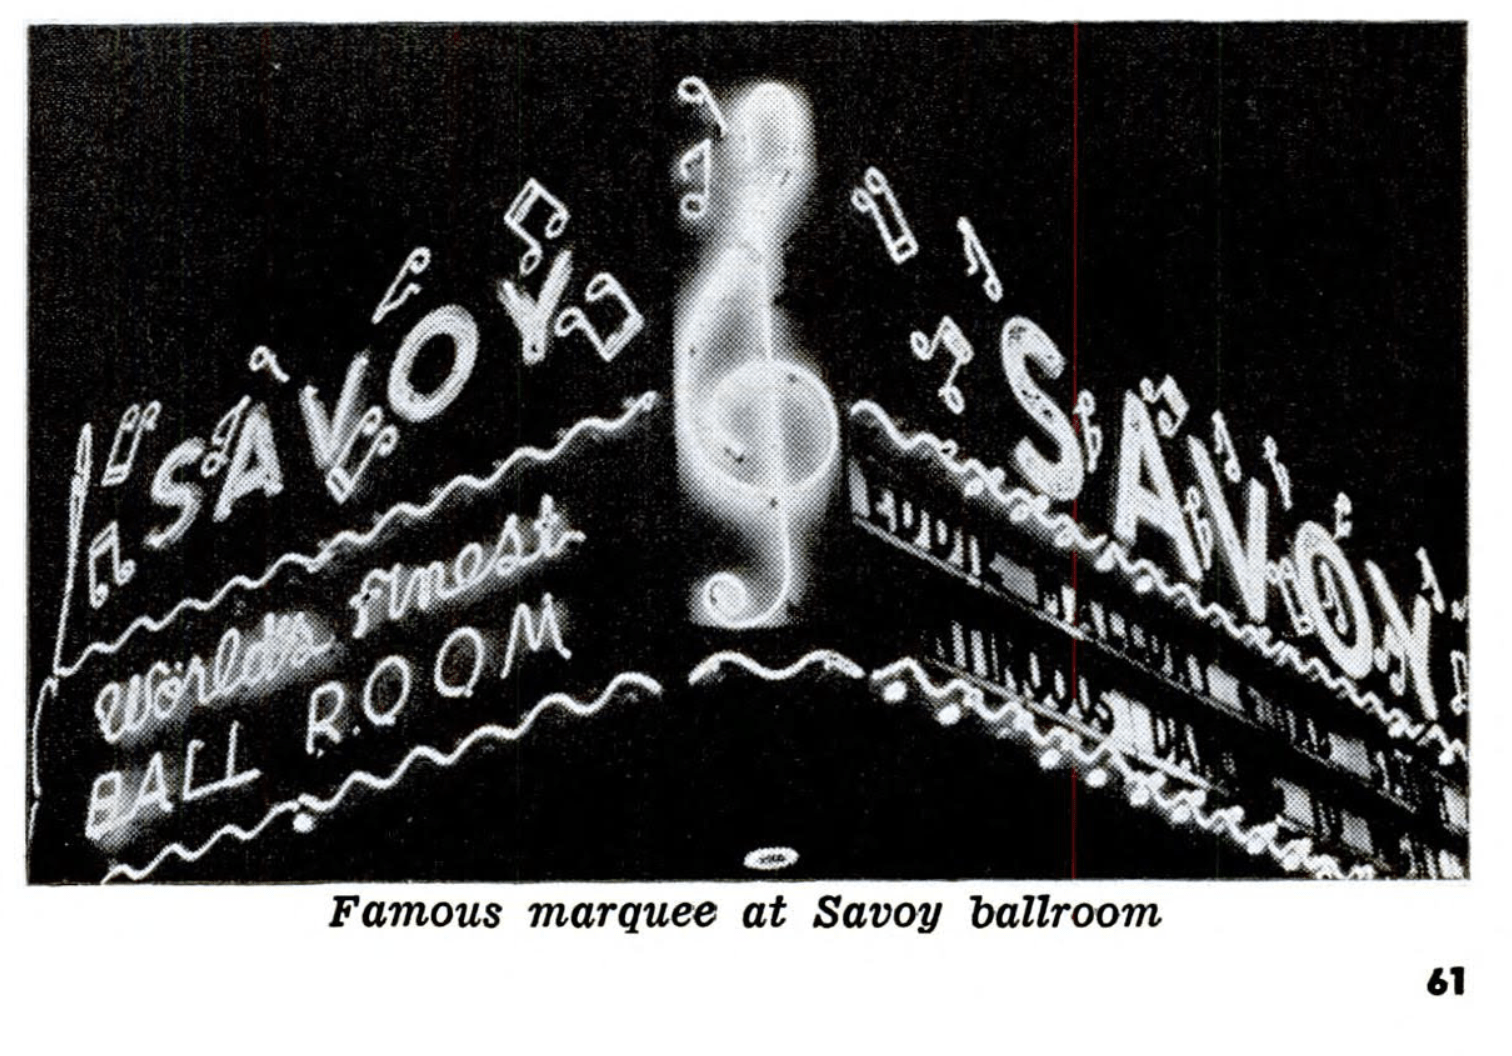 1953 – Shot of the Savoy Ballroom marquee. Source: Jet Magazine, 20th August 1953, p61.